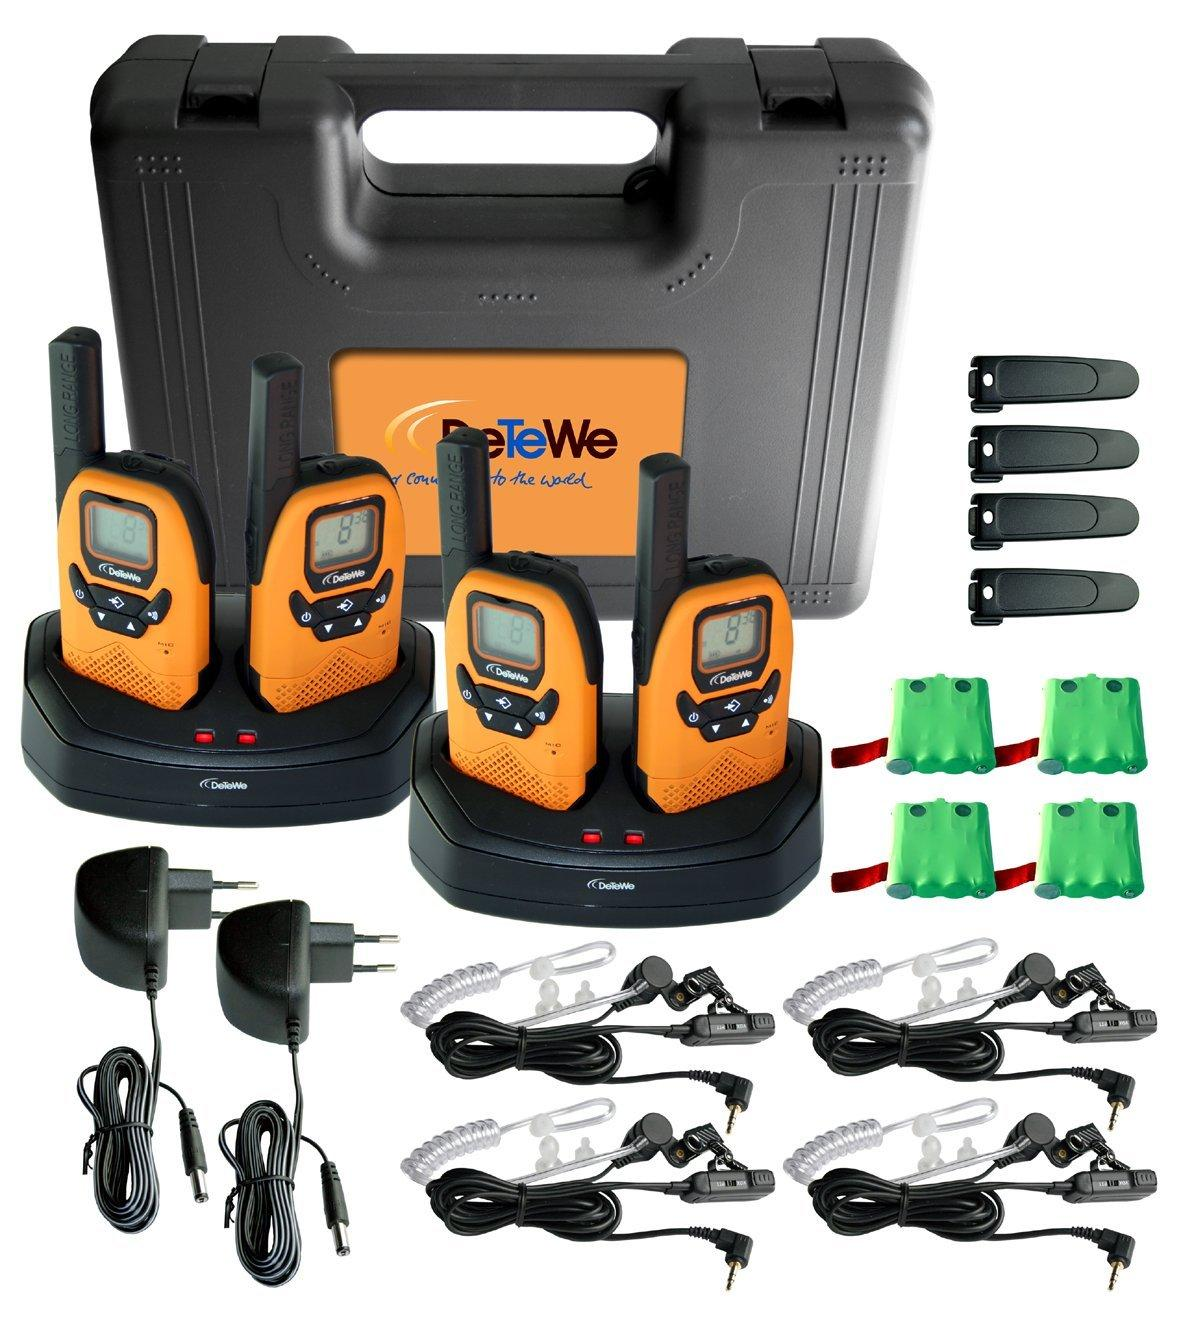 DeTeWe Outdoor 8000 4er Set